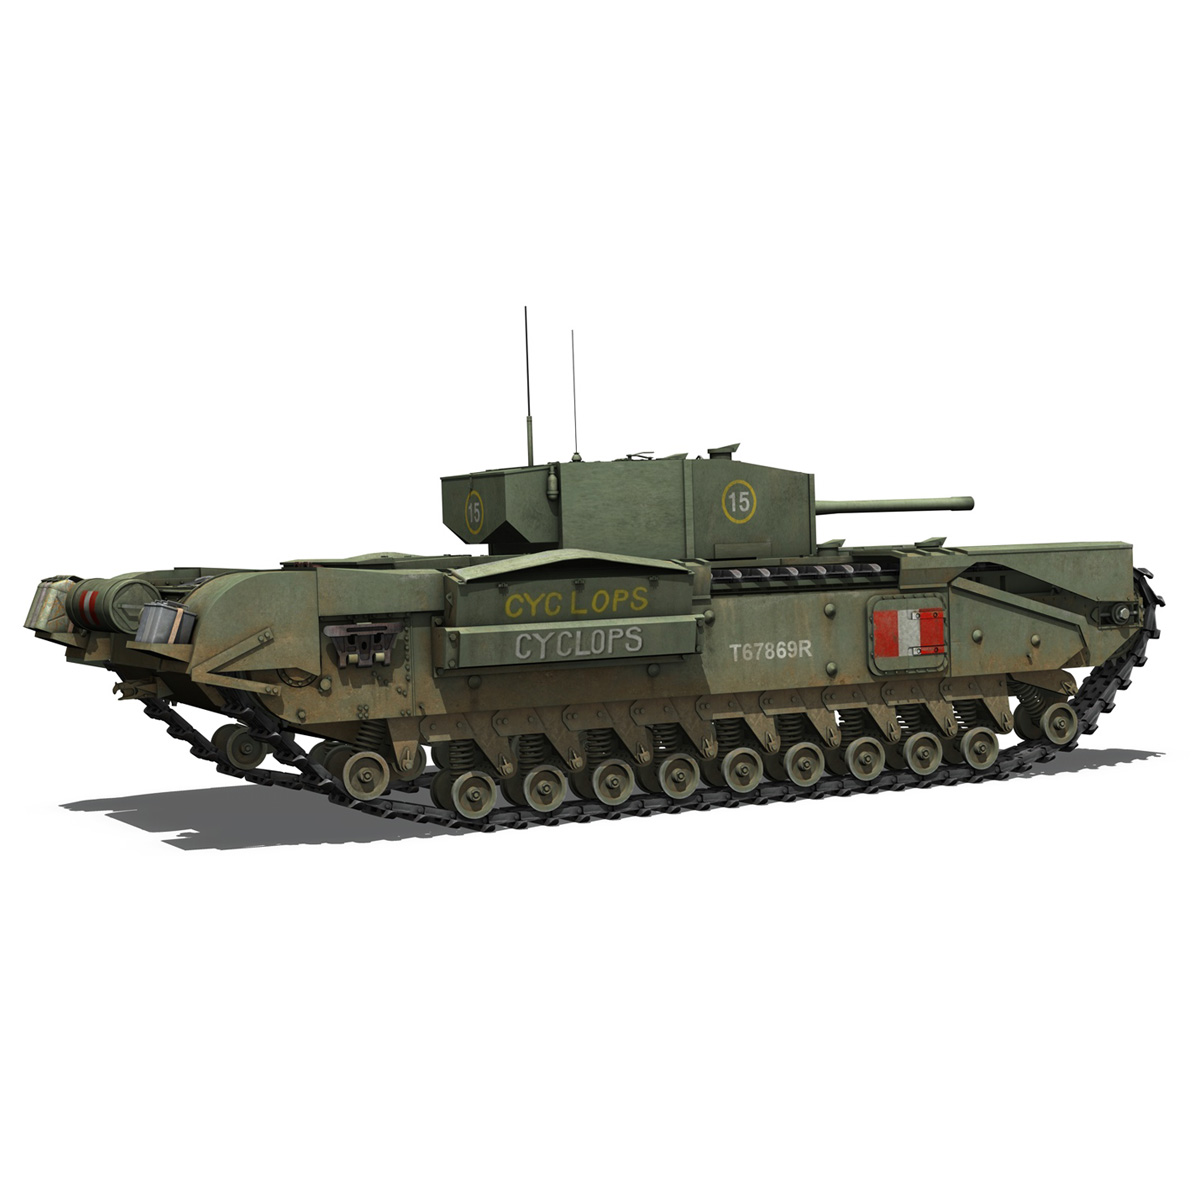 churchill mk.iii - cyclops 3d model 3ds fbx c4d lwo obj 270902